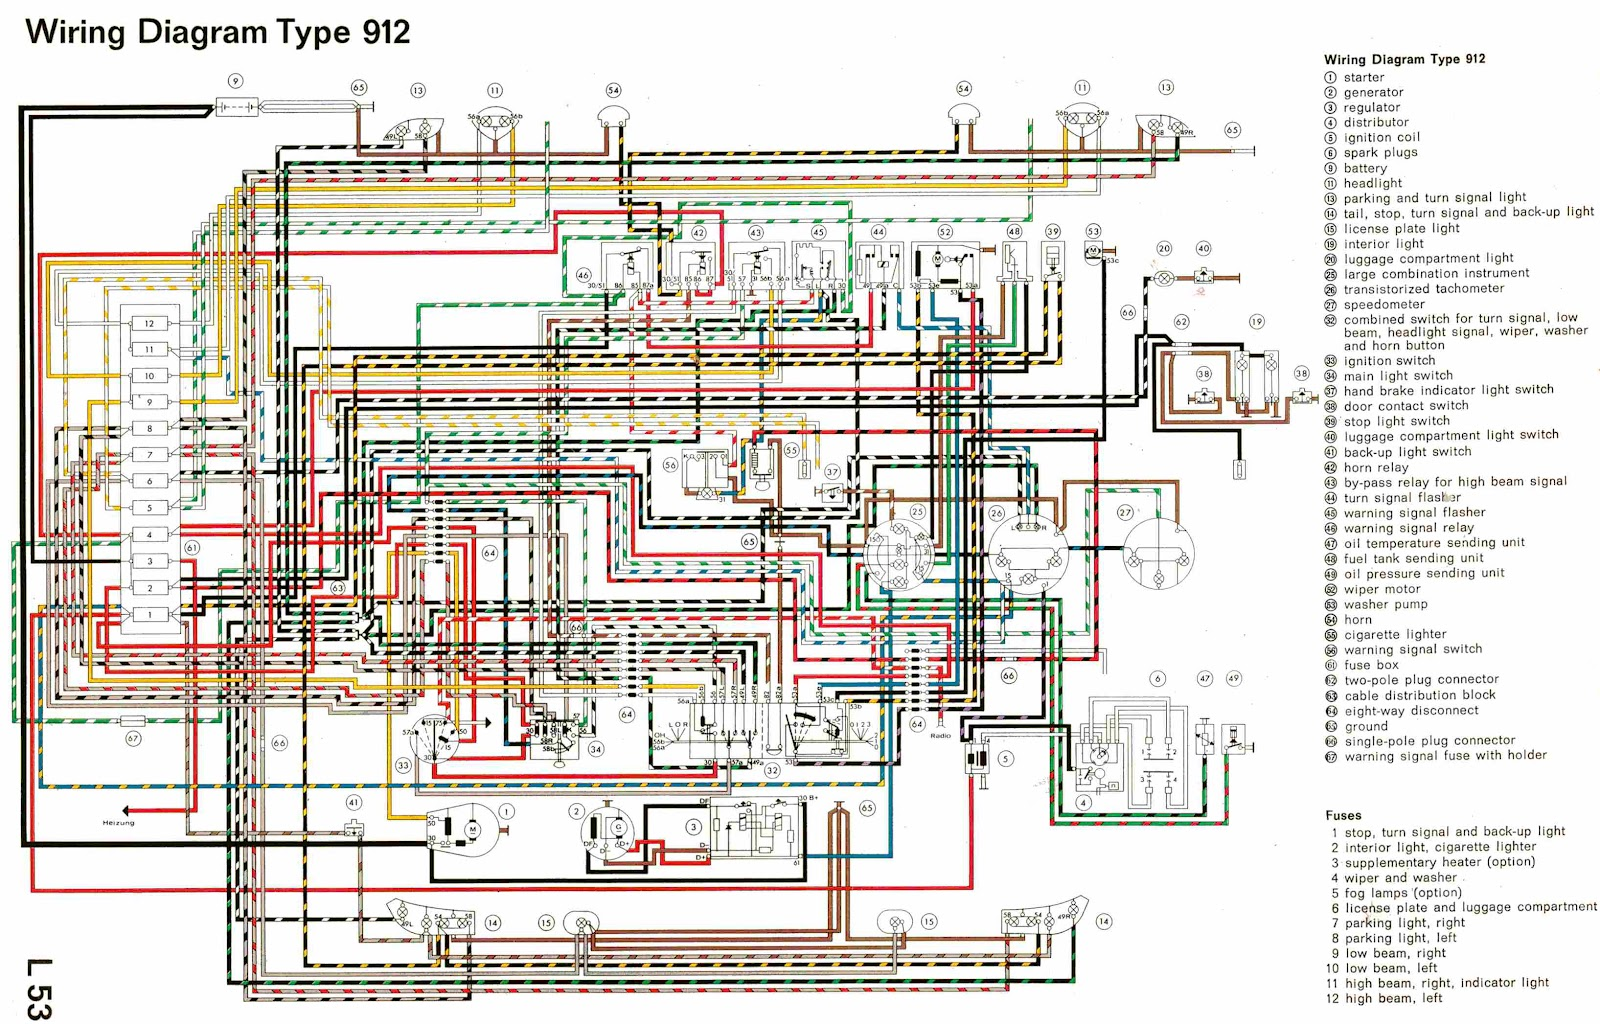 2005 jaguar s type wiring diagram eOlsUBU diagrams 633455 jaguar s type wiring diagram stype electrical v6 conversions wiring diagram at creativeand.co